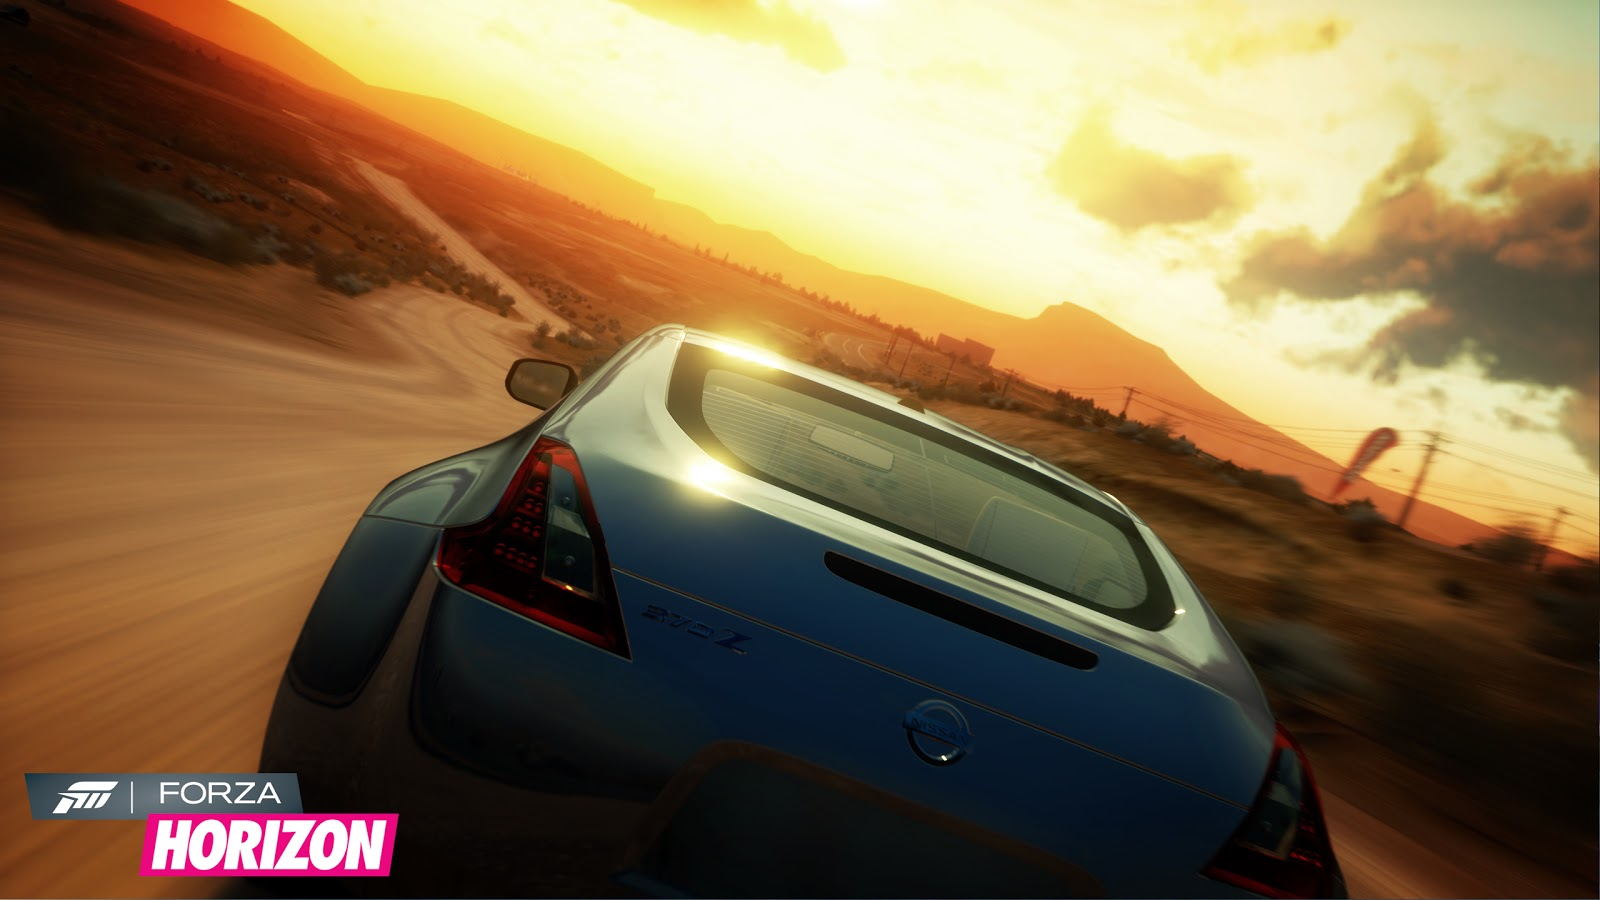 Forza Horizon HD & Widescreen Wallpaper 0.938911685308401